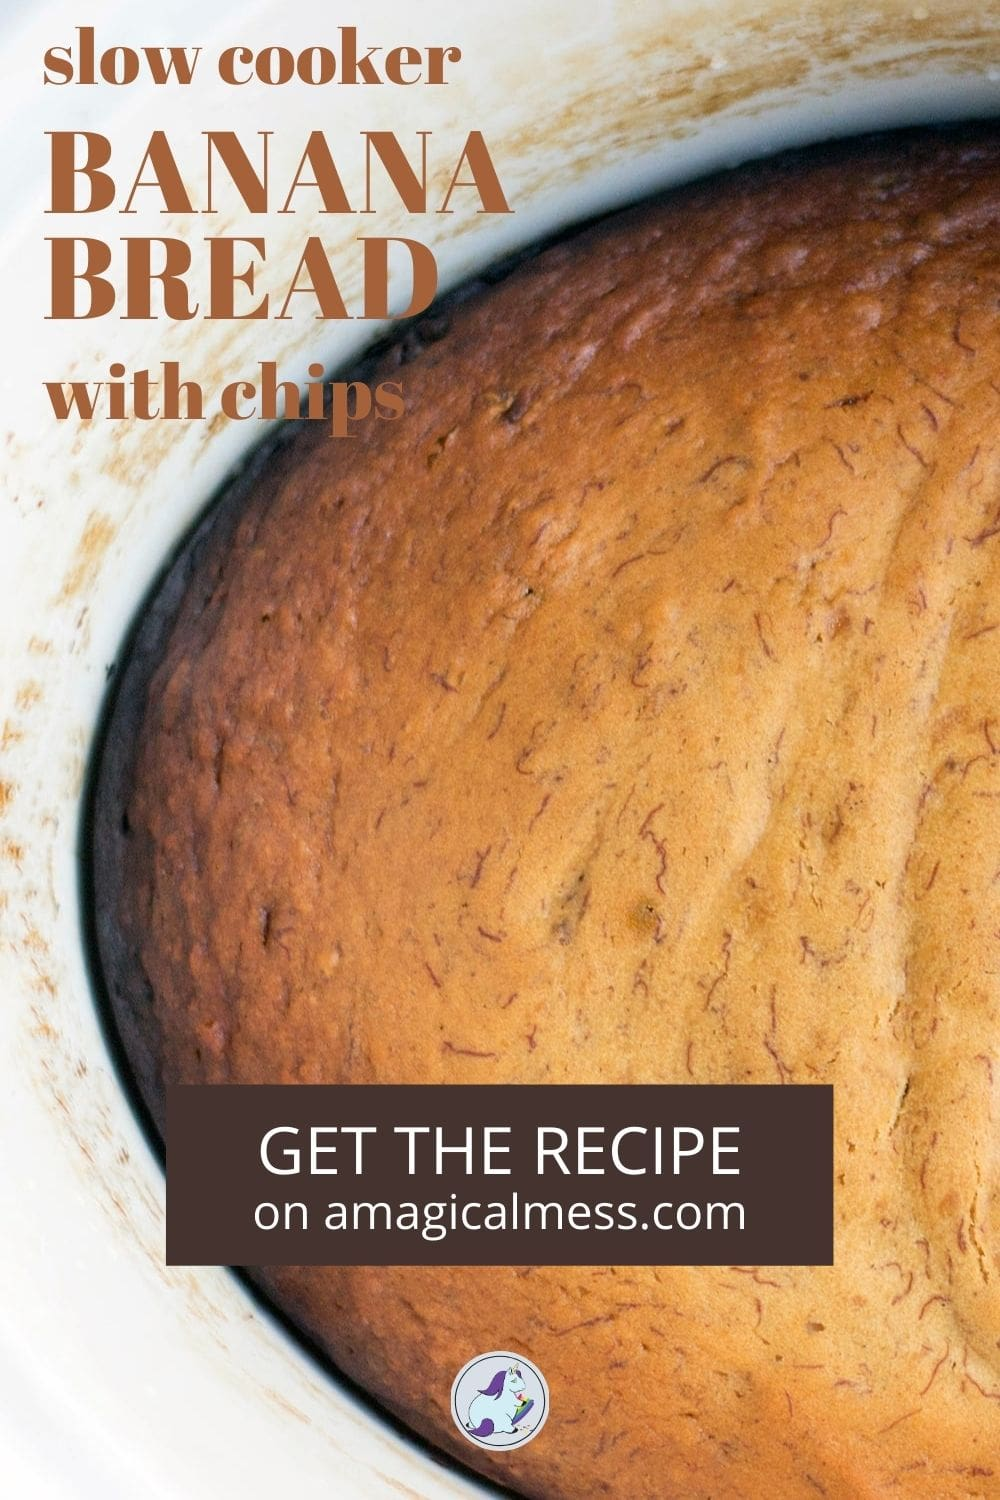 banana bread in a slow cooker